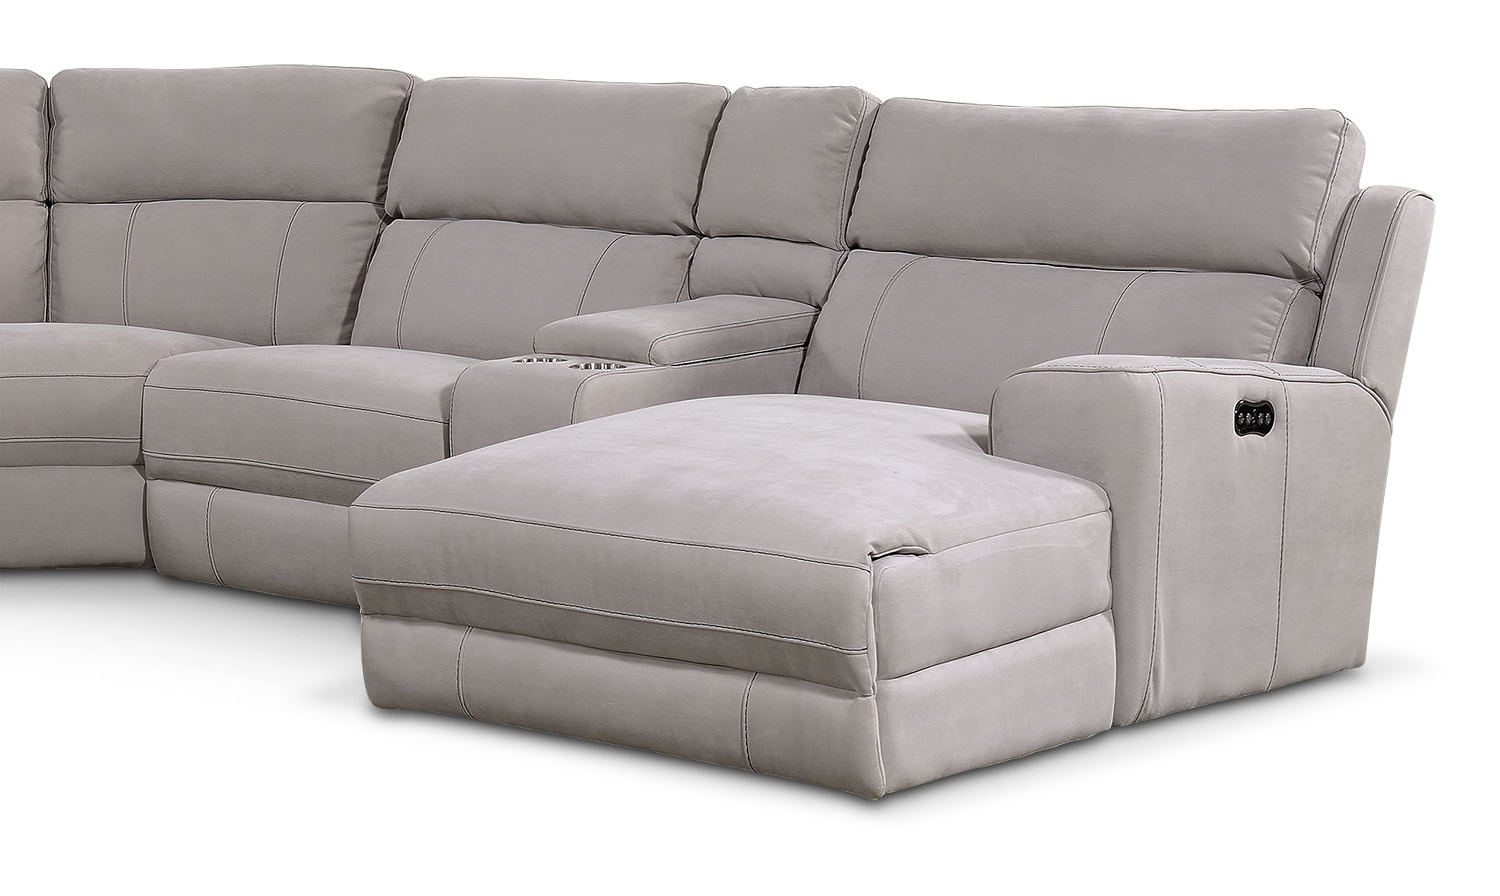 Copenhagen Reclining Sectional Sofas With Left Storage Chaise With Regard To Most Recently Released Newport 6 Piece Power Reclining Sectional With Left Facing (View 10 of 25)